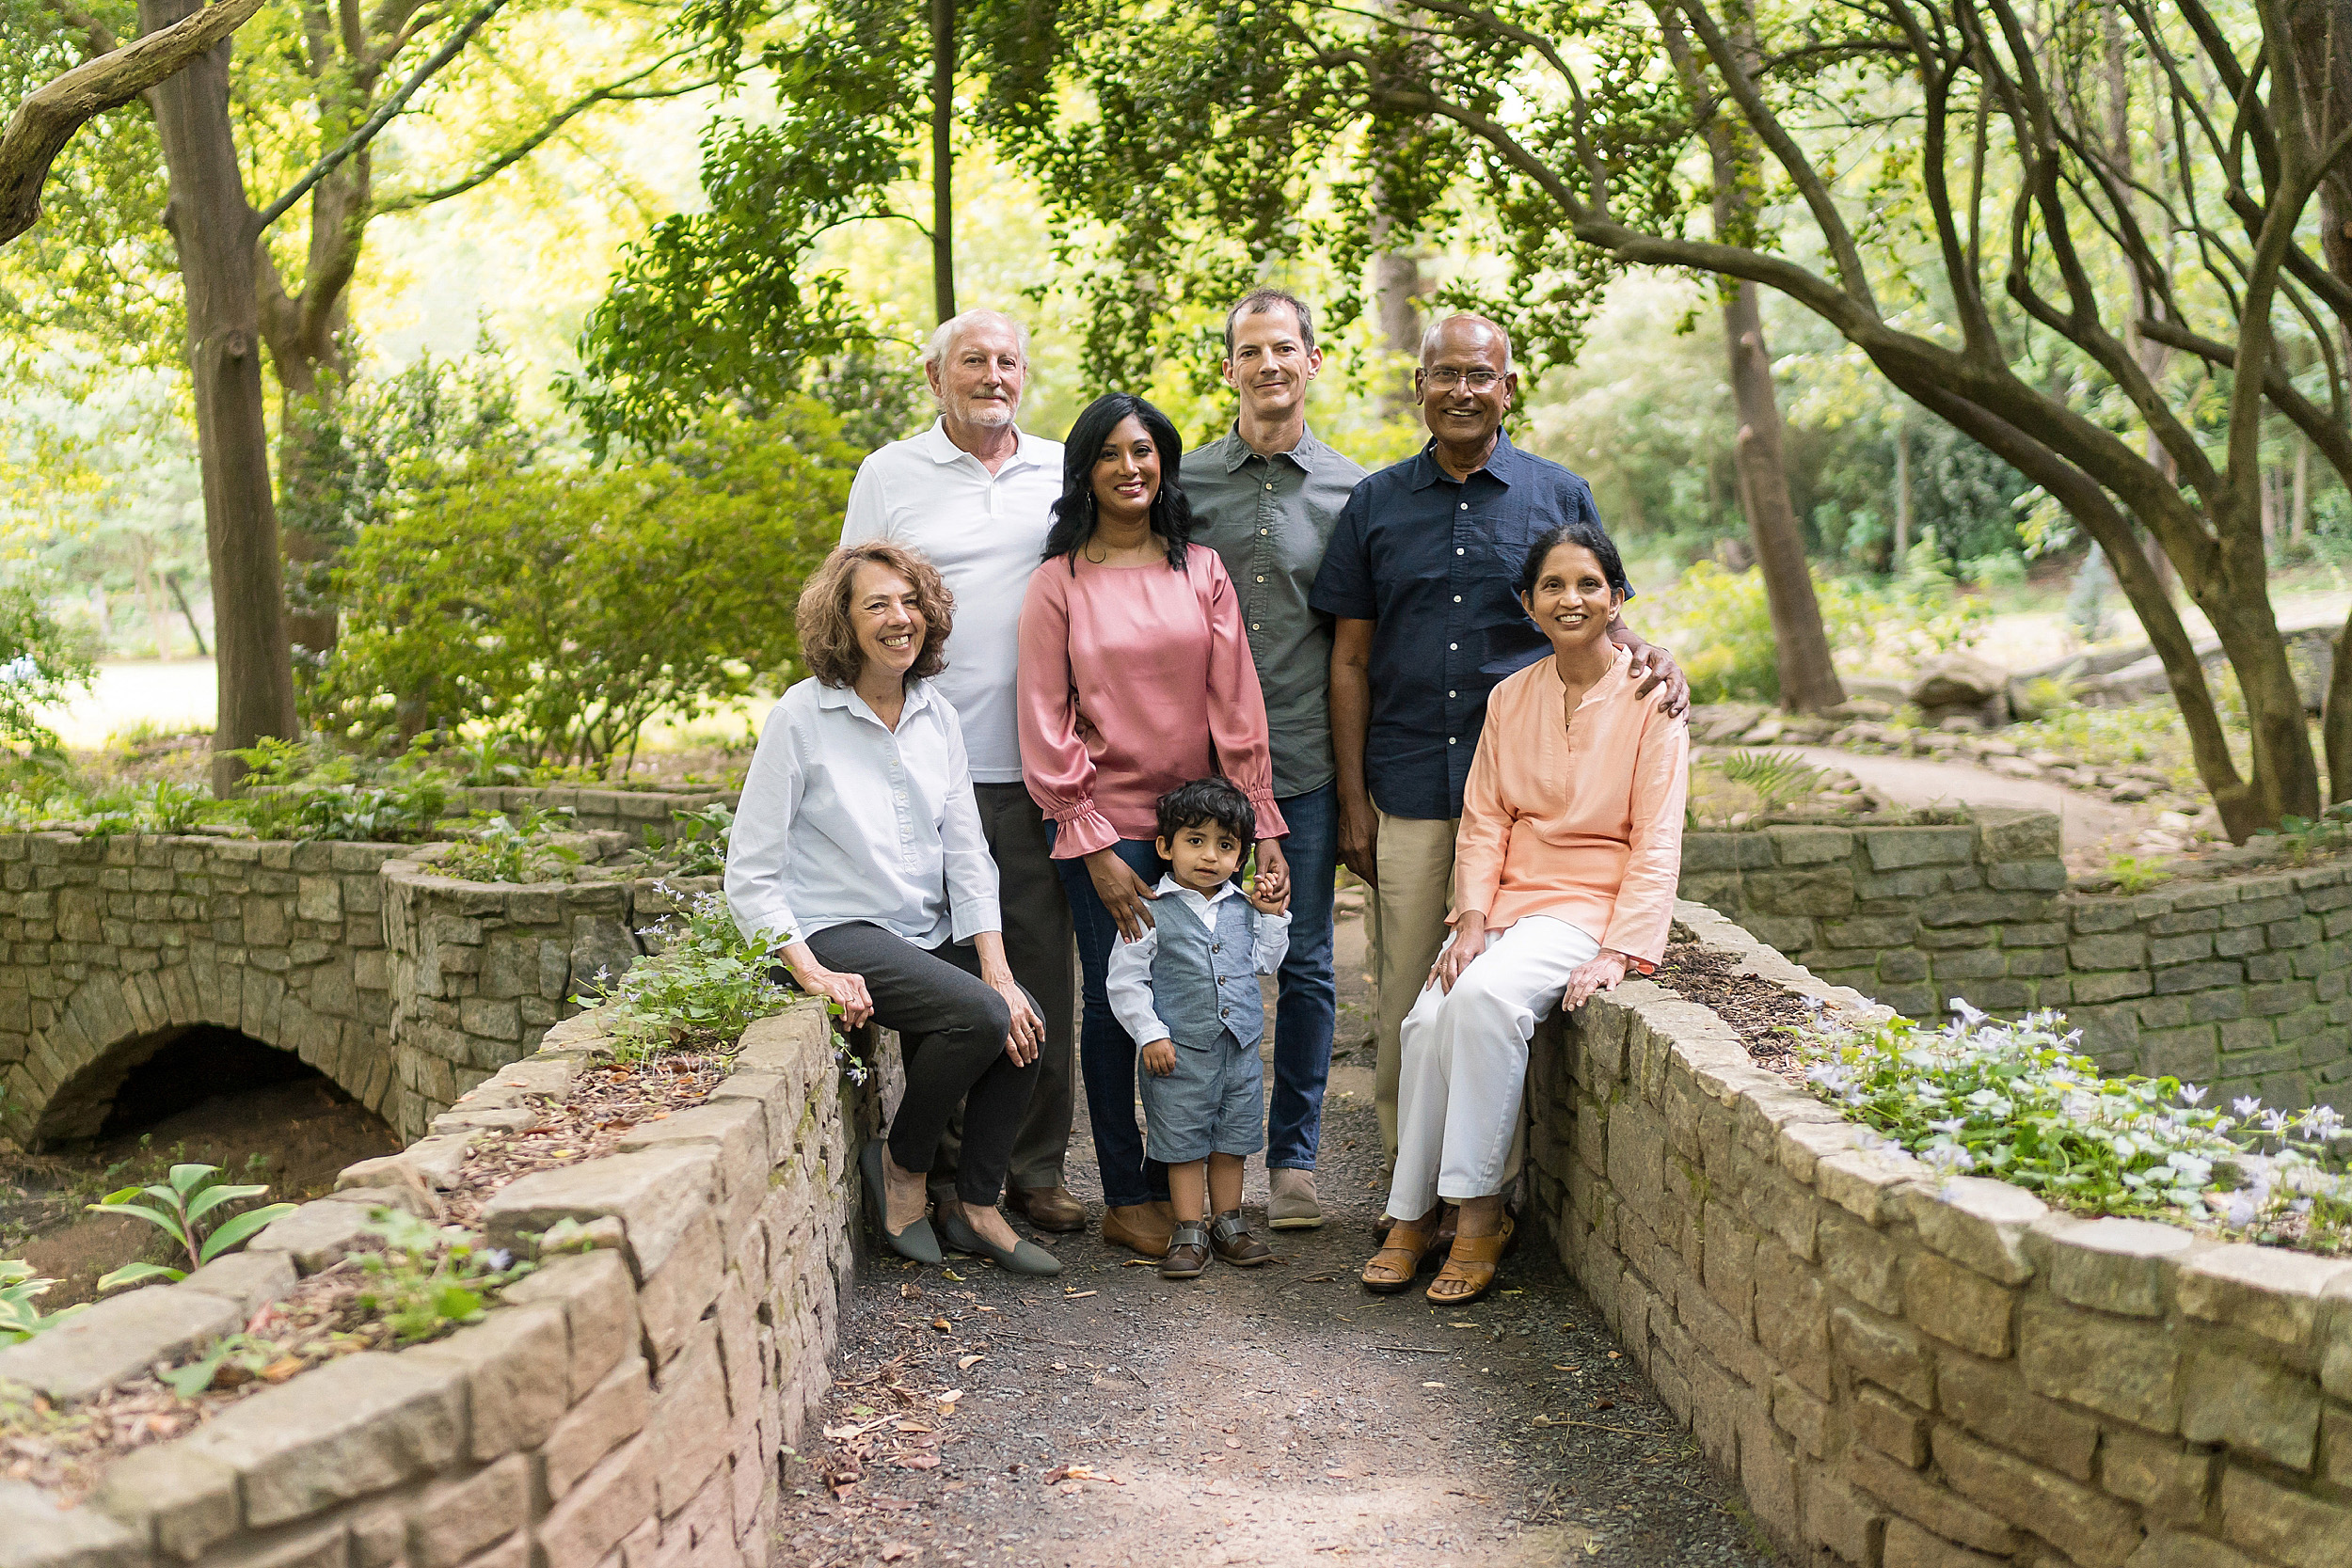 Family photo of seven with mom, dad, two-year old son, and both sets of grandparents on a stone bridge in a garden at sunset in Atlanta.